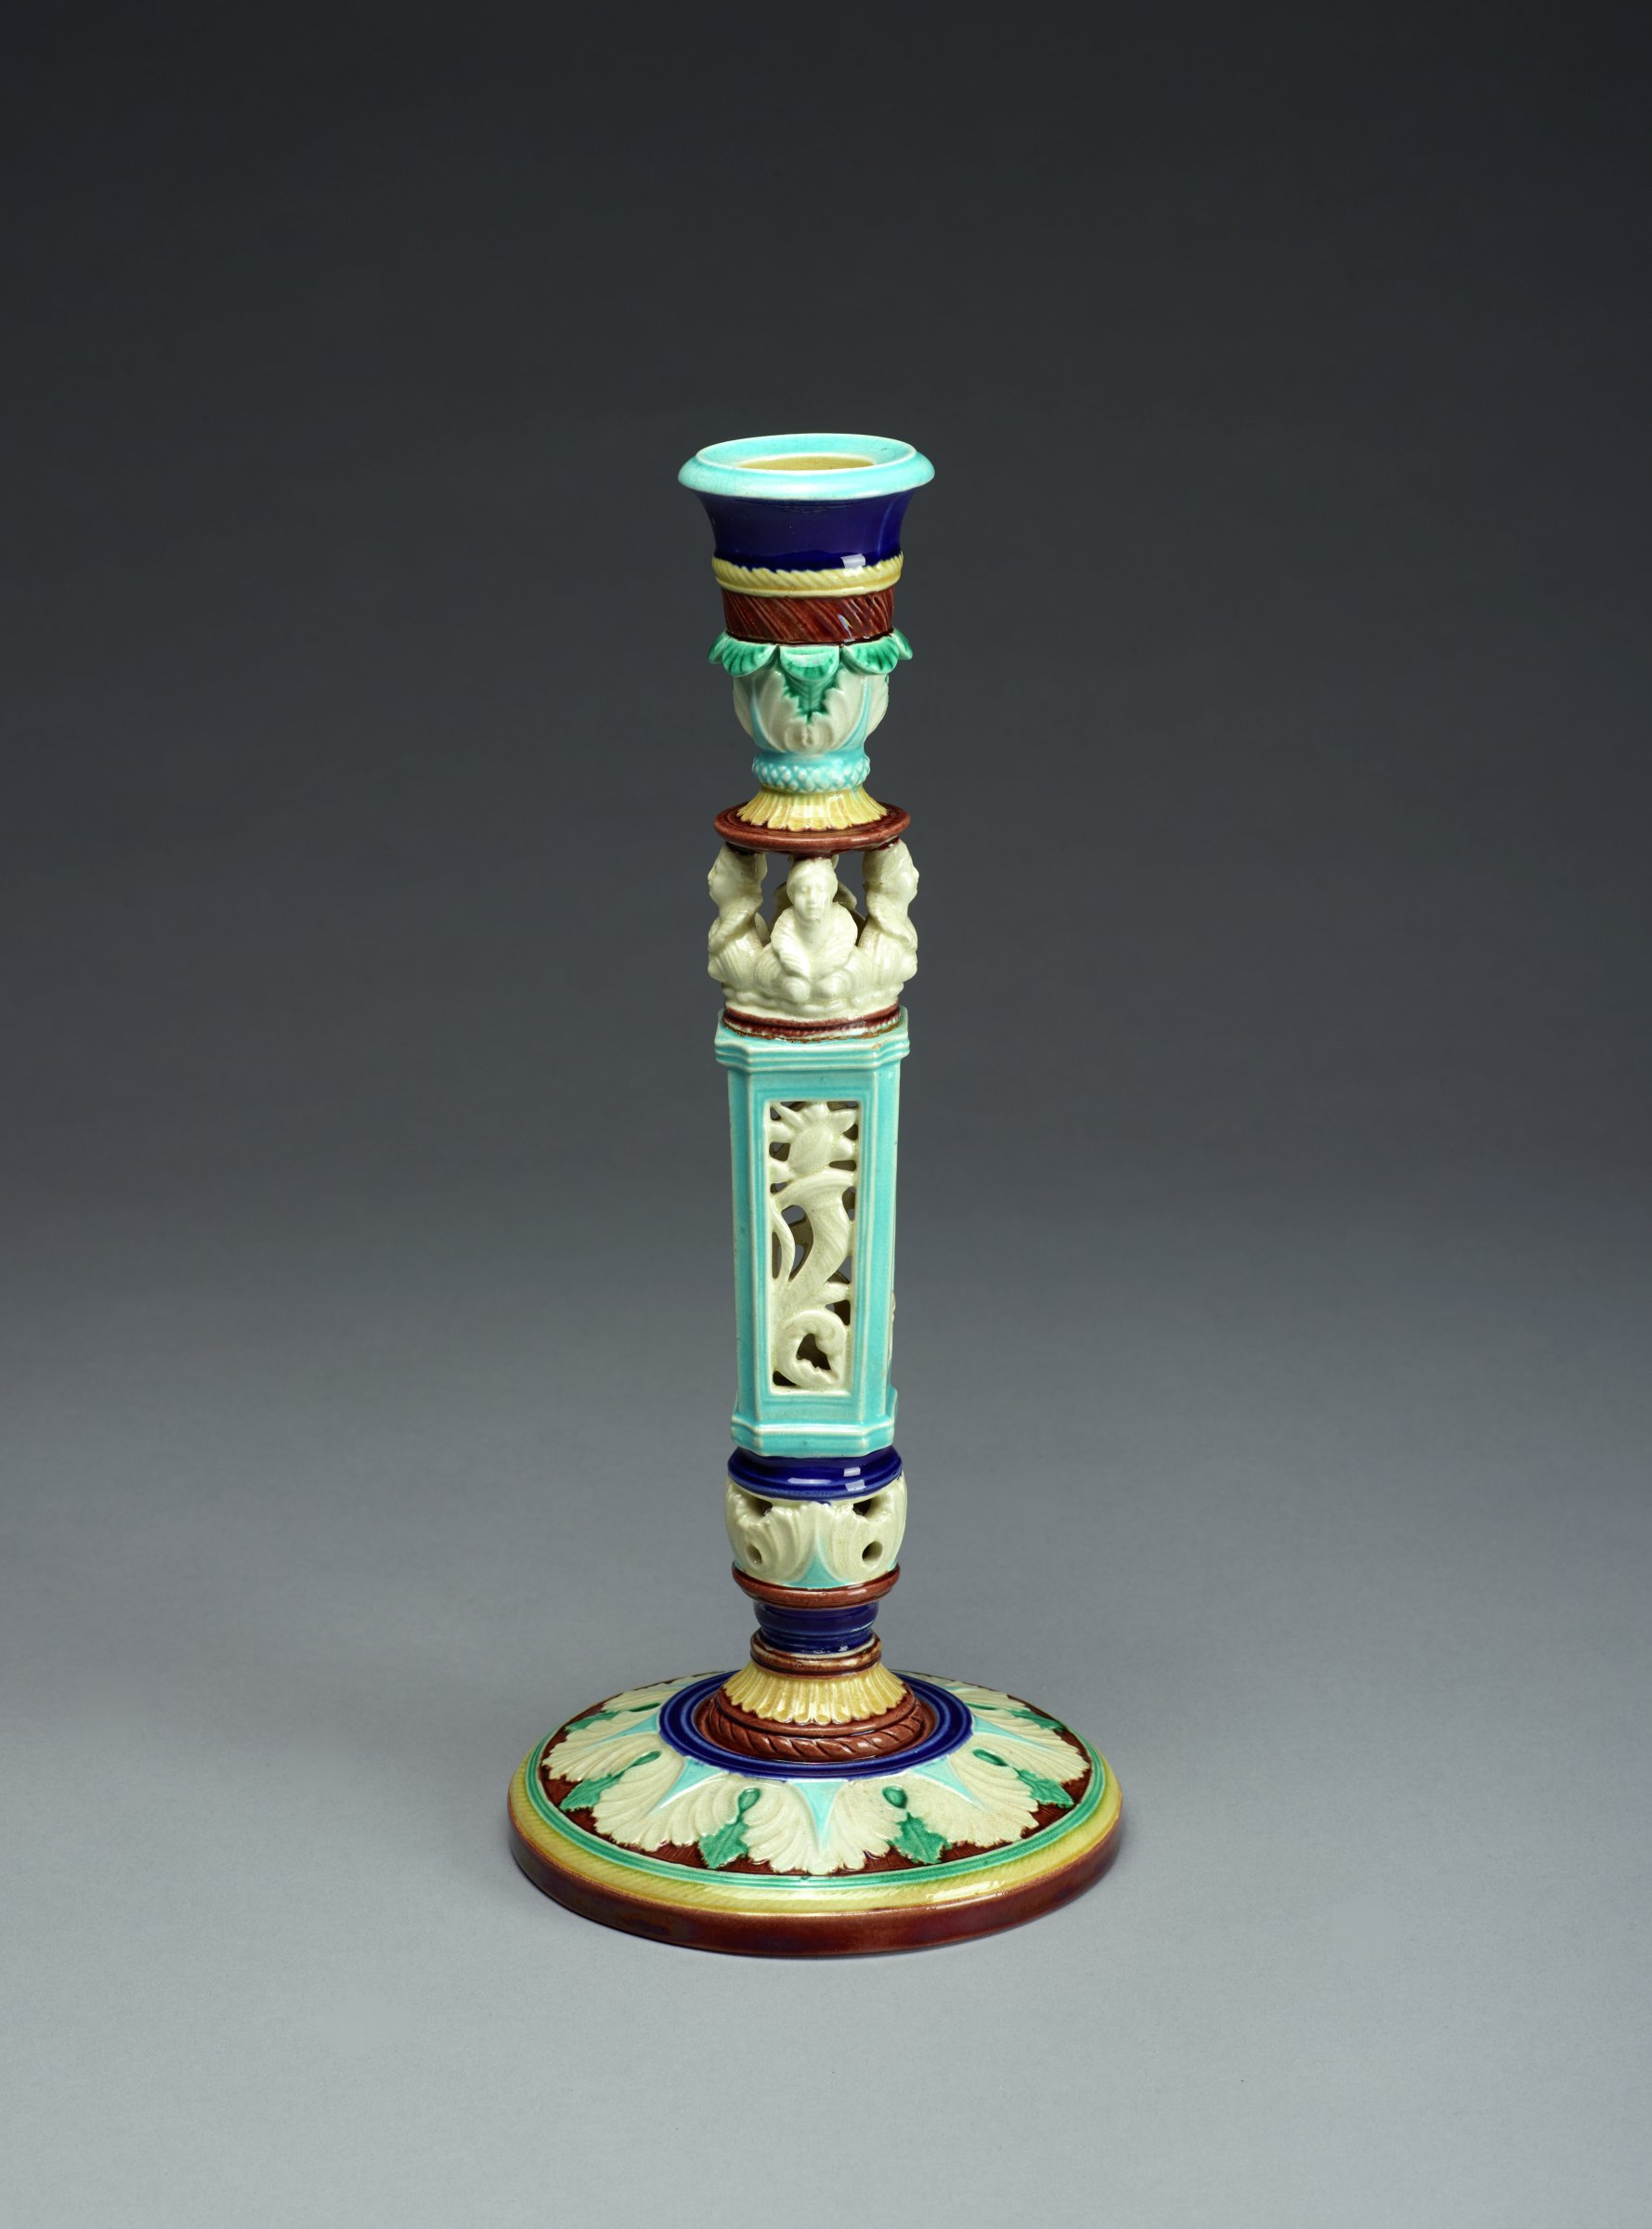 Tall, narrow candlestick in the 16th century Renaissance style of colorful Majolica glazed in bright shades of green, blue, yellow, brown and white, of columnar form with round foot decorated with stylized acanthus leaves in low relief, the angular stem pierced with figures and scrolling floral elements below four female busts that support the leafy bobeche, the nozzle in the shape of an urn.